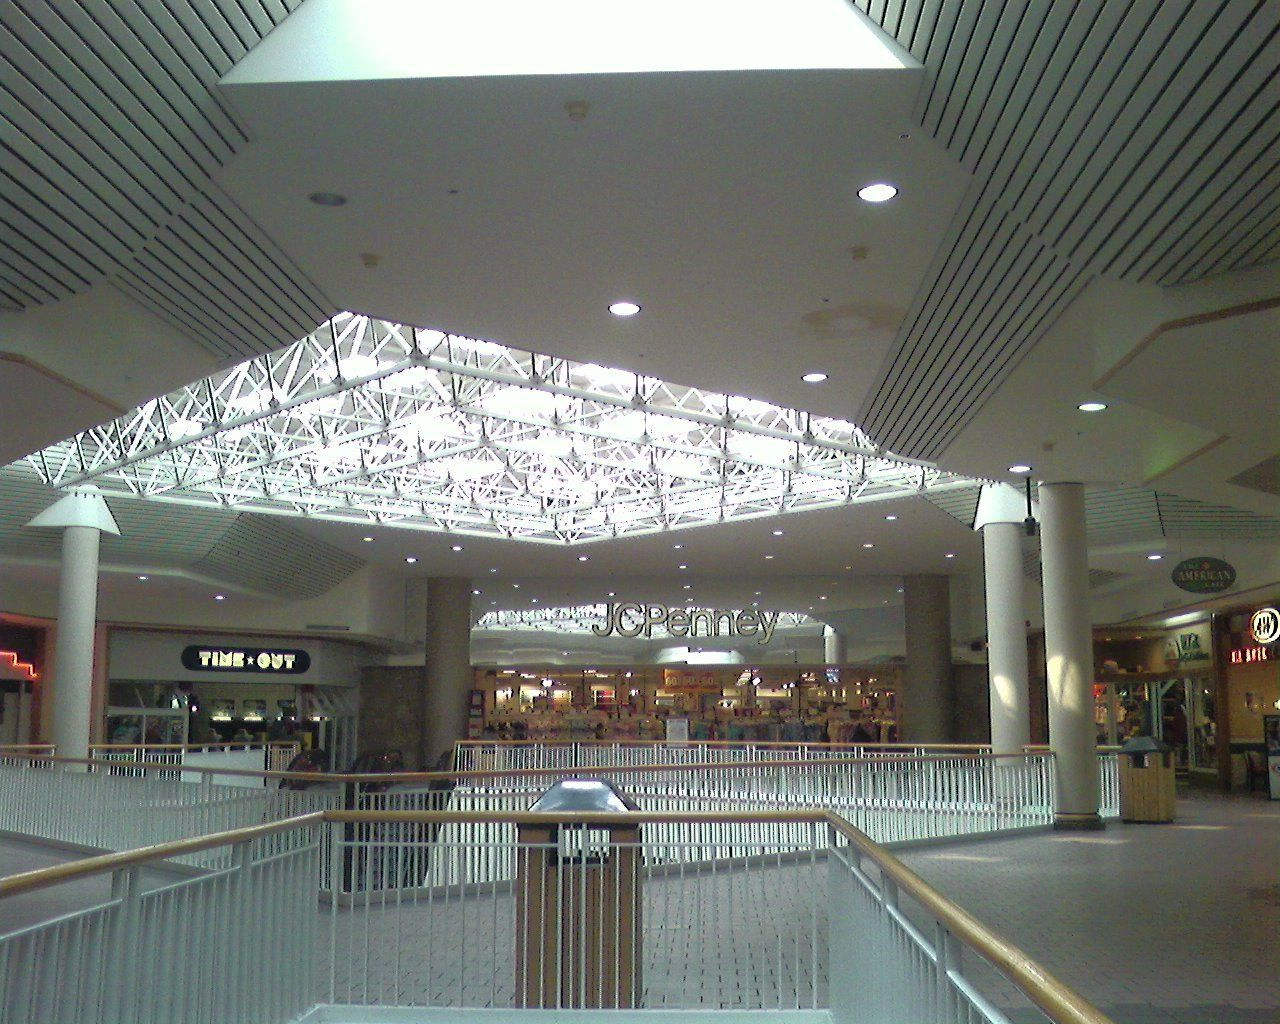 Sgt. C. reccomend Asian mall northern virginia